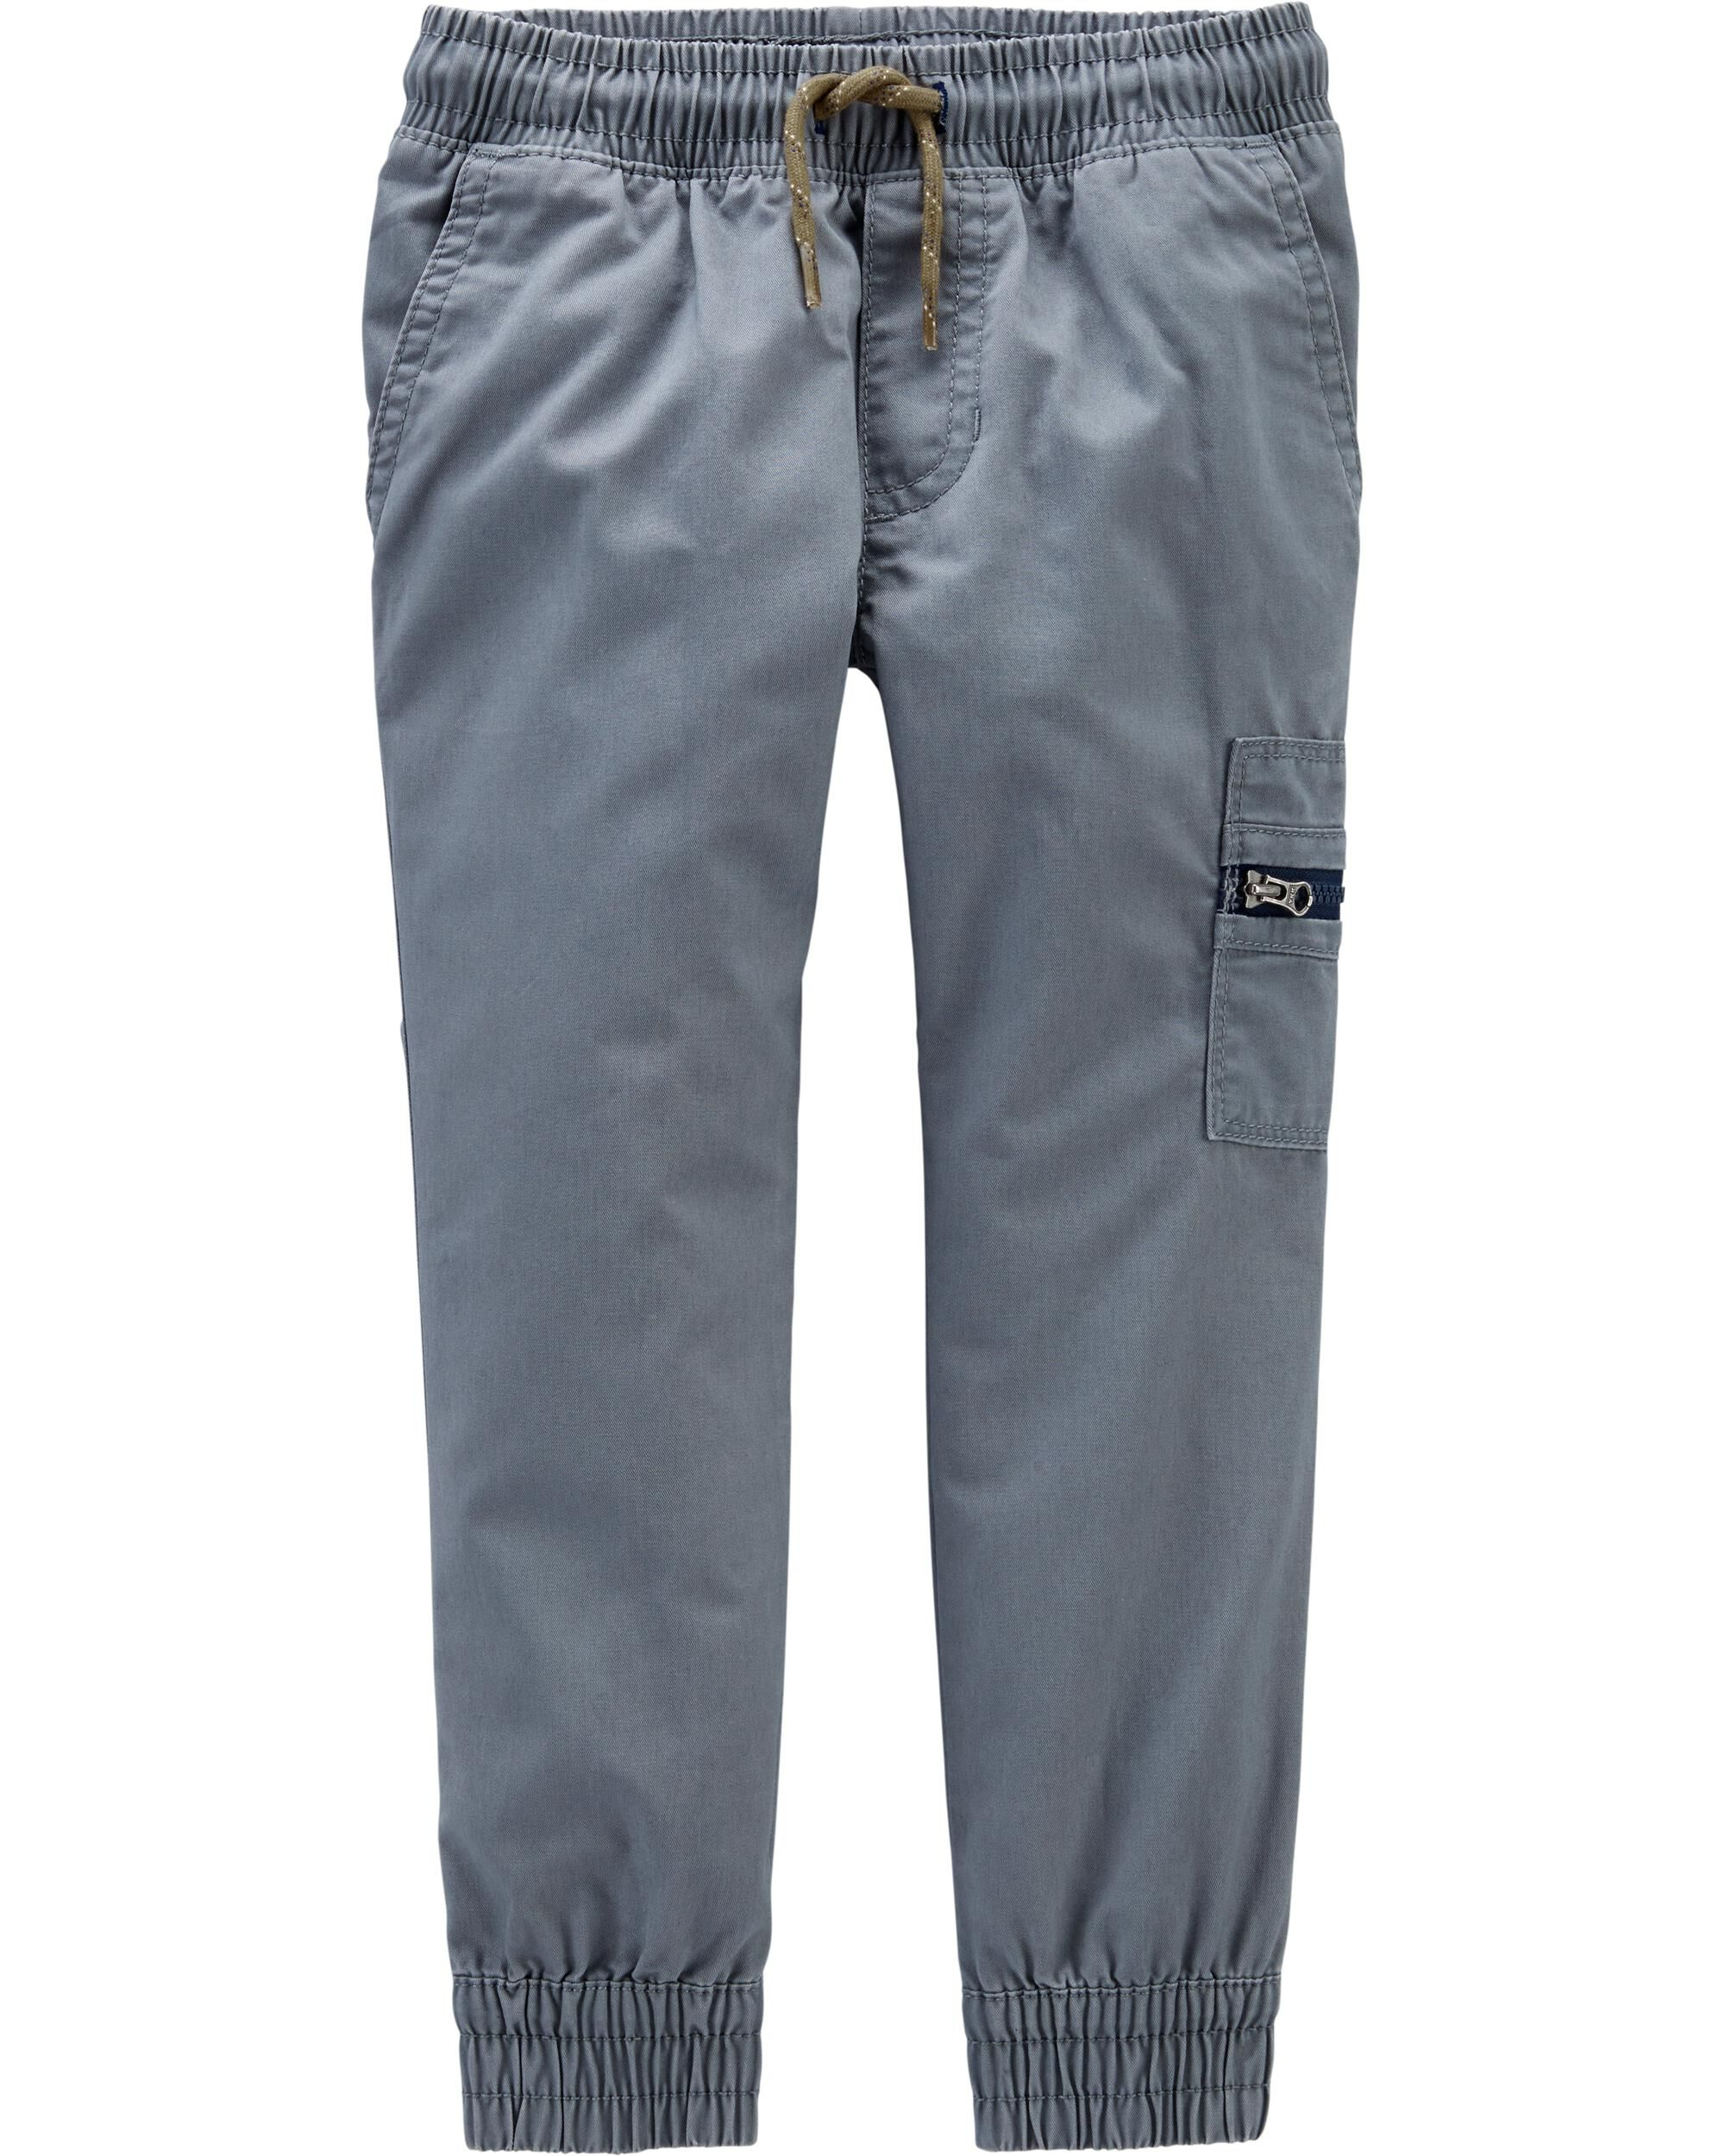 *CLEARANCE* Pull-On Cargo Pants